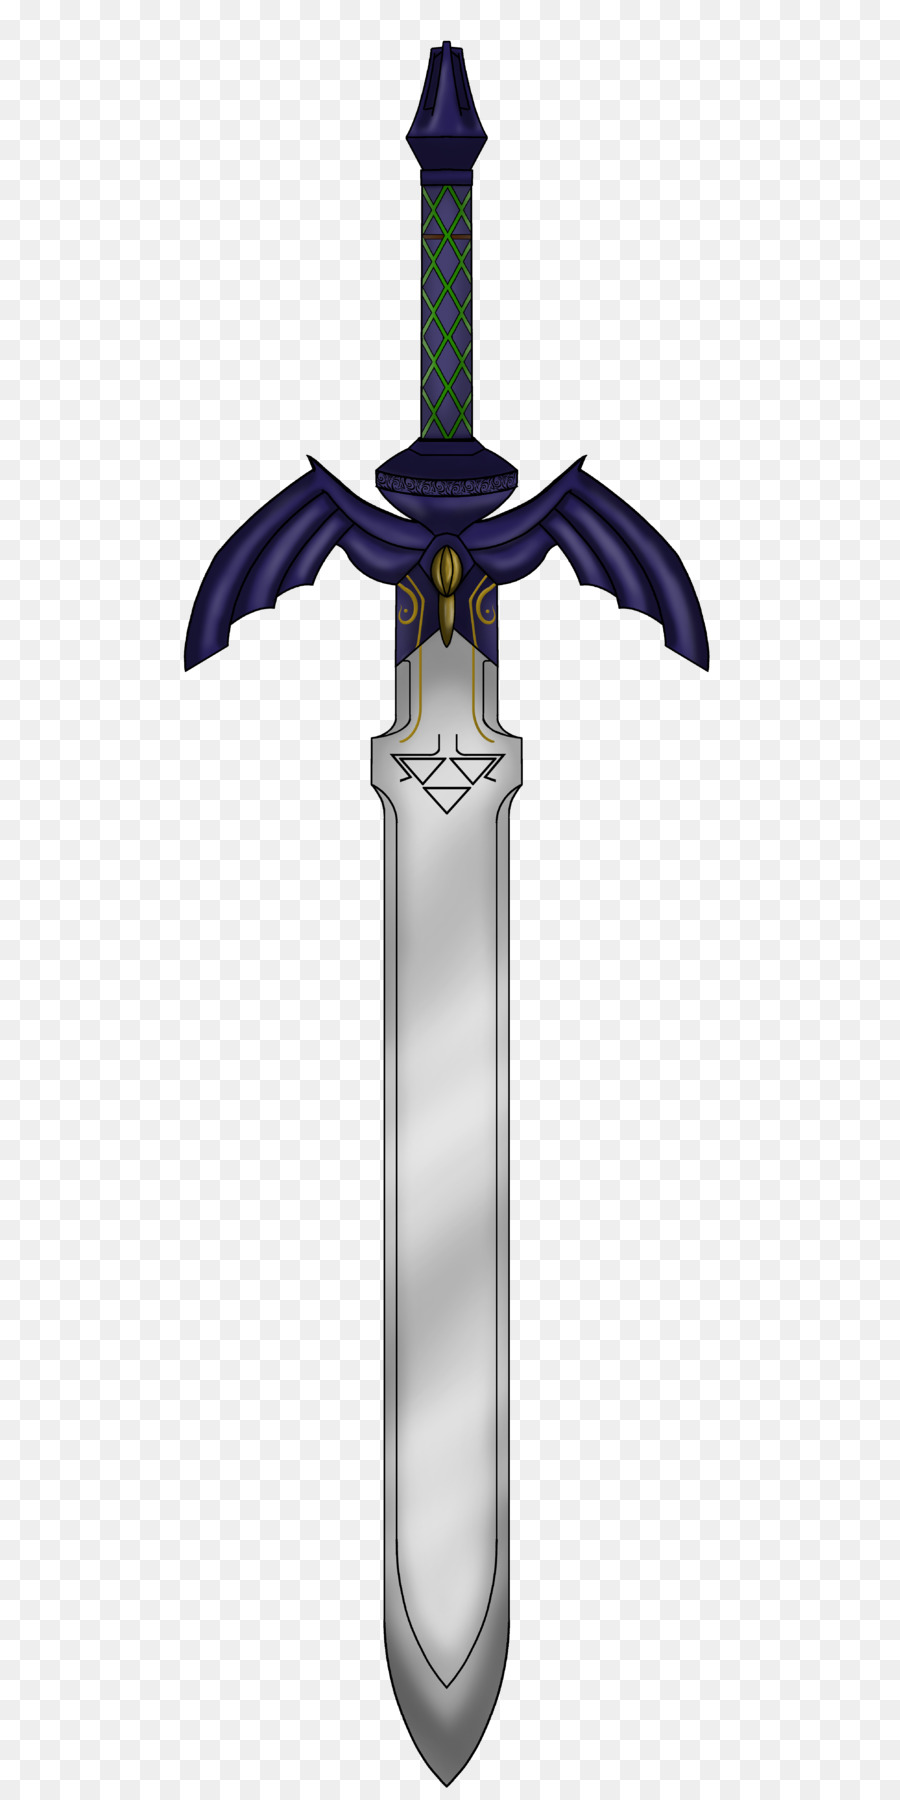 Zelda mastersword clipart banner free stock breath of the wild master sword png clipart Sword The Legend ... banner free stock